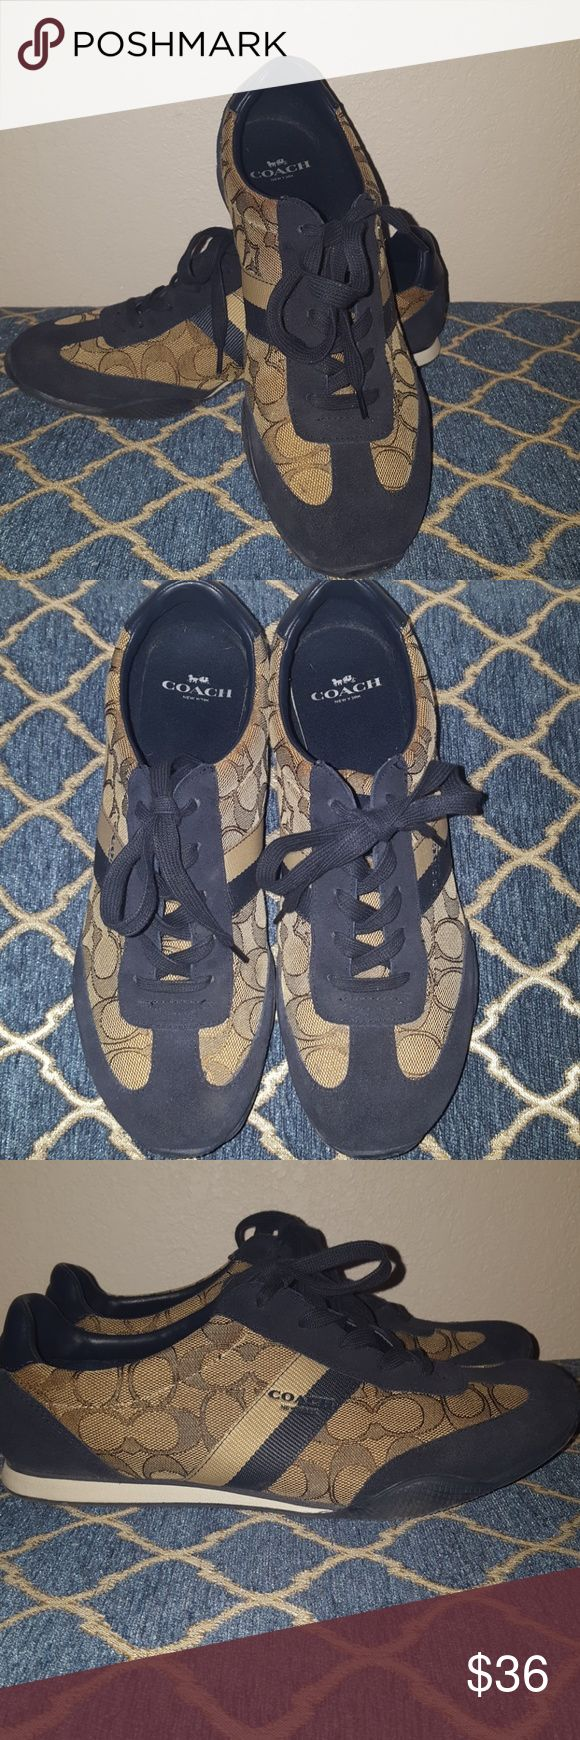 Coach Tennis Shoes Coach Tennis shoes in excellent condition! Navy blue and Tan. Coach Shoes Sneakers